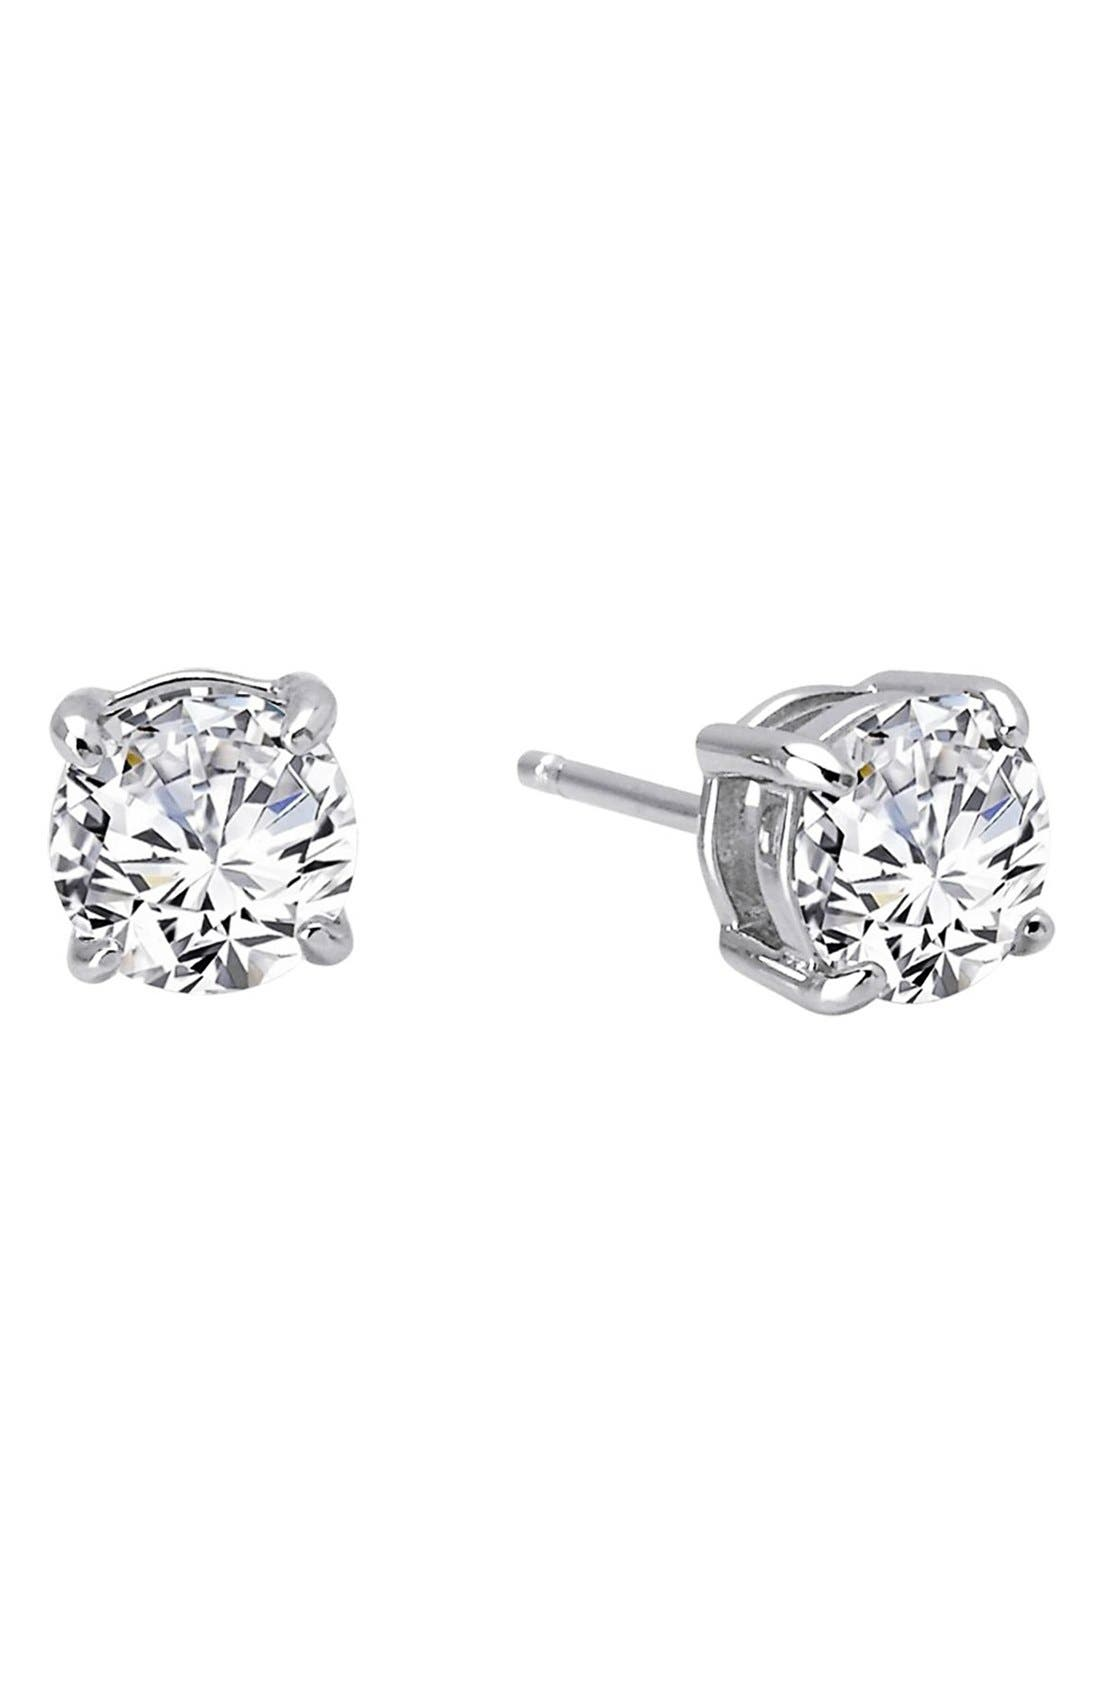 Main Image - Lafonn 'Lassaire' Four Prong Stud Earrings